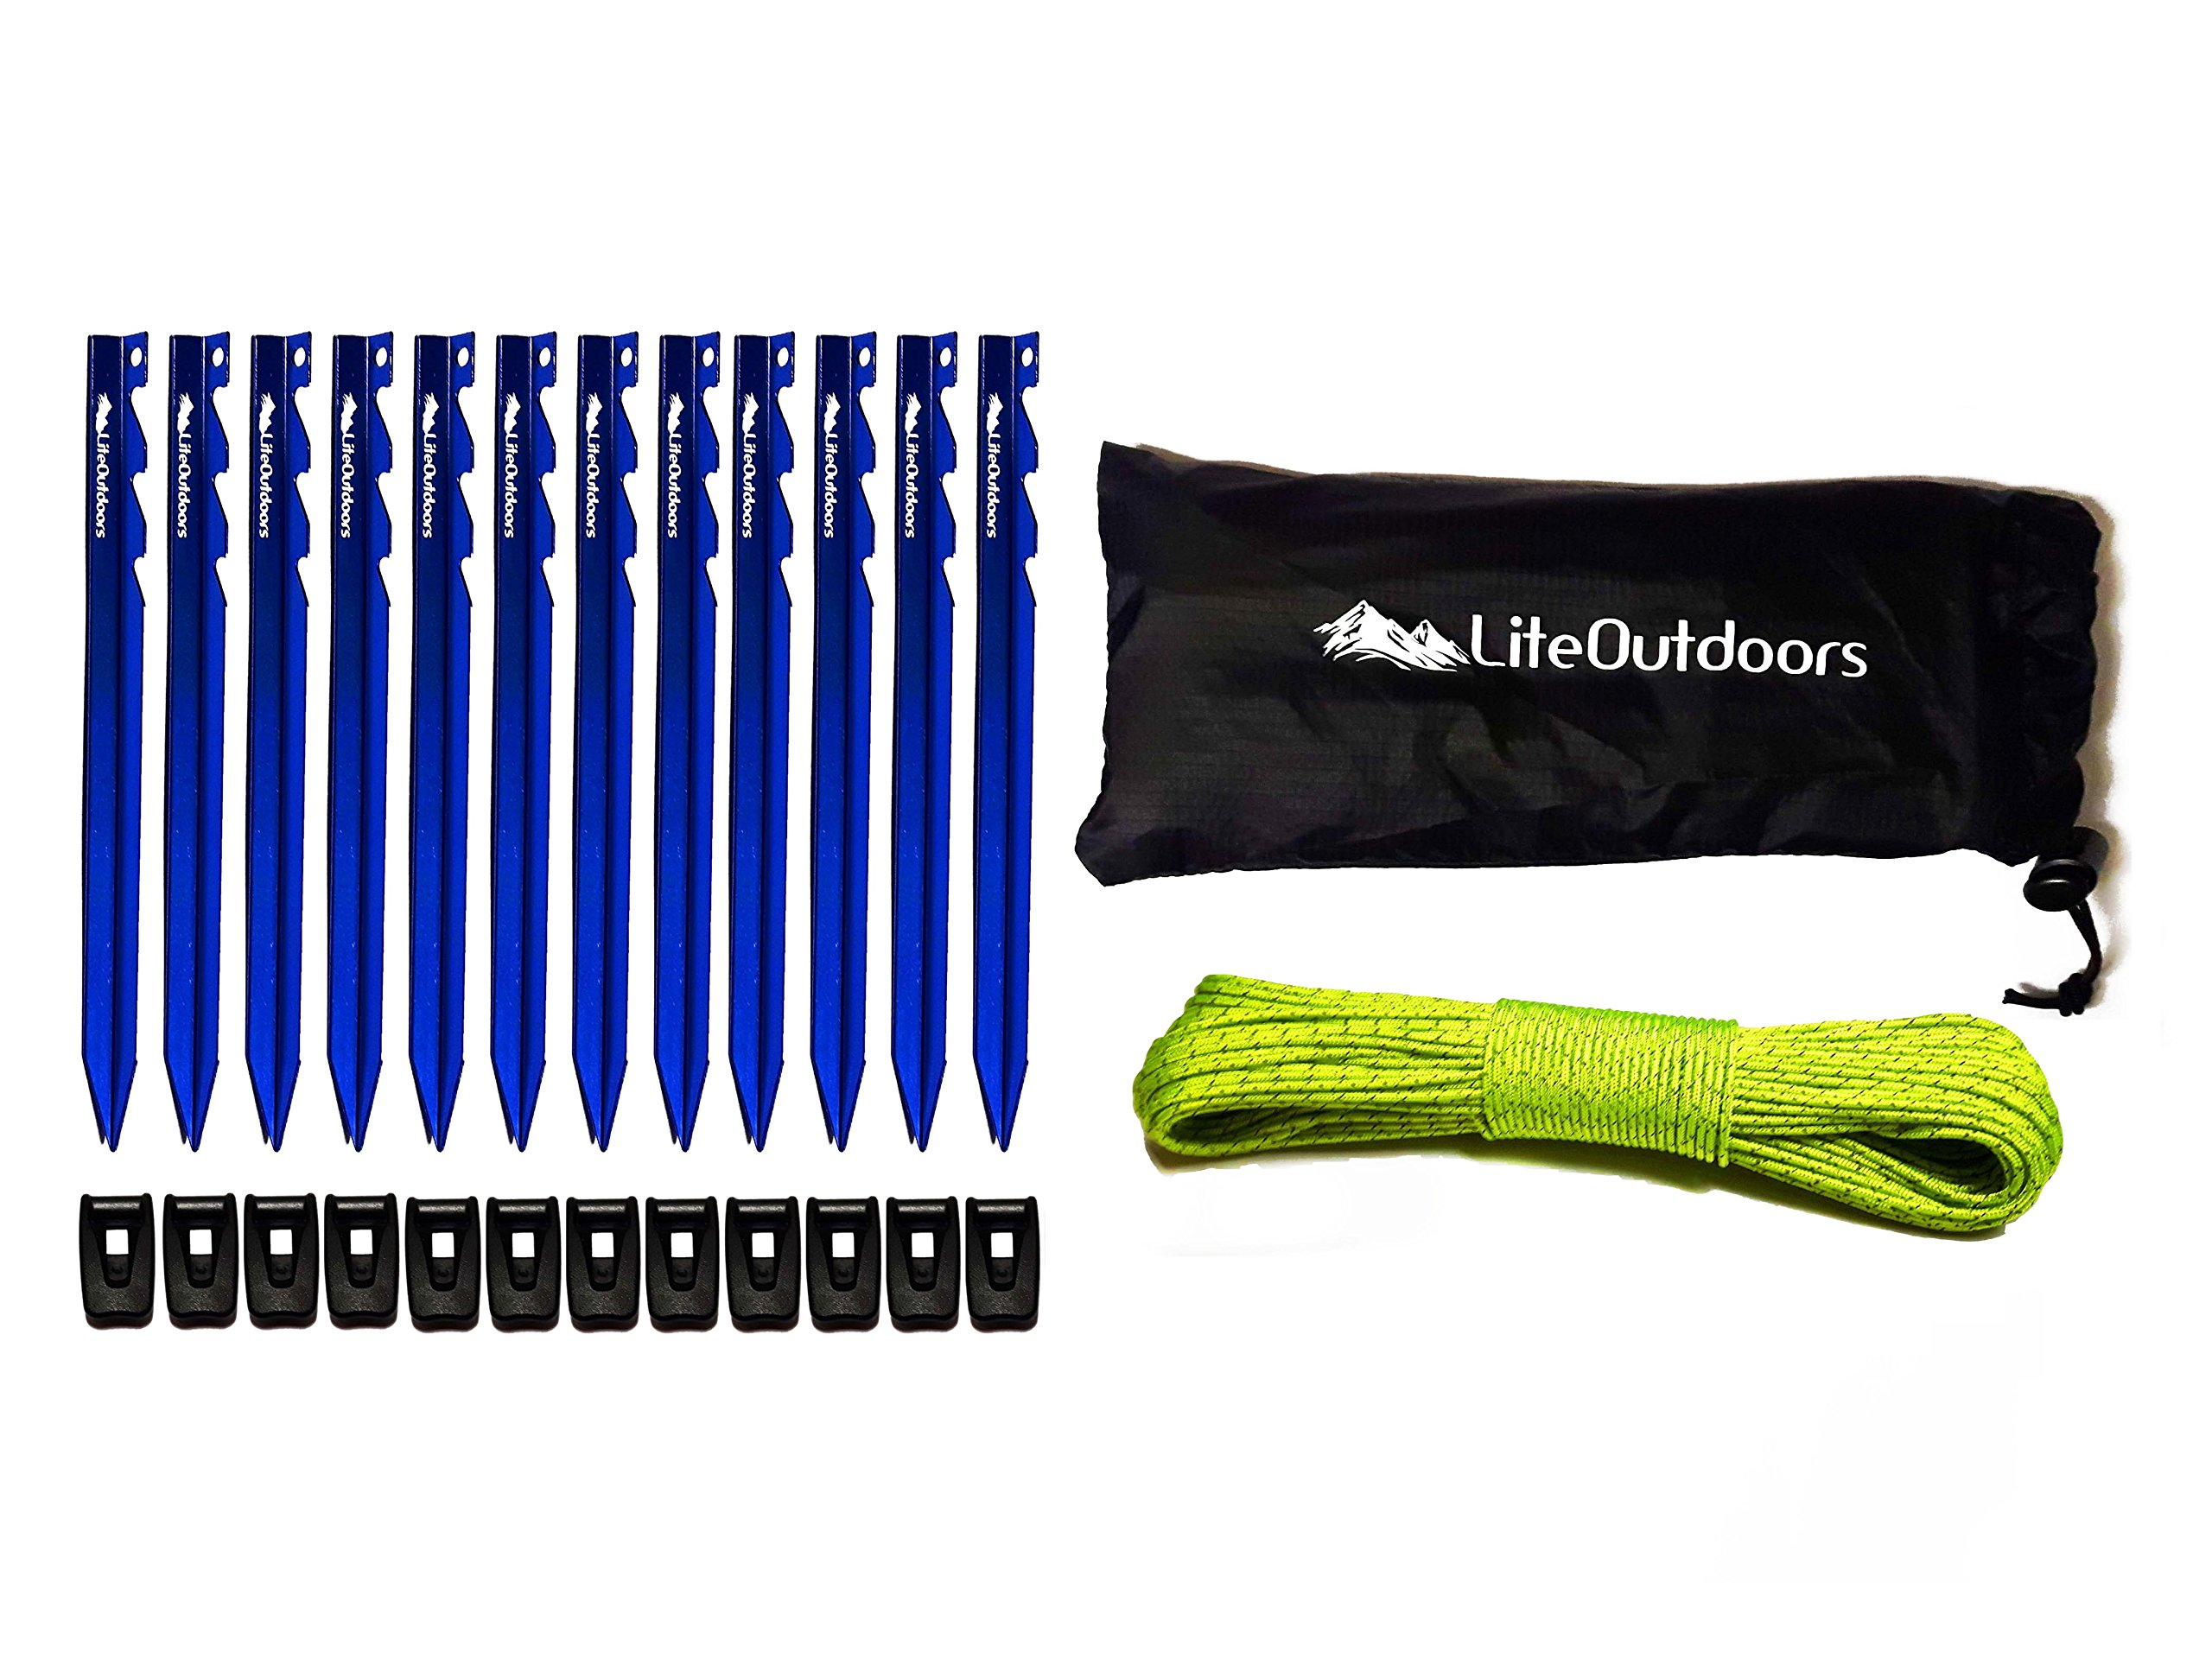 LiteOutdoors Ultralight Tent Stake Kit - 12 Aluminum Tent Pegs, 100' Reflective Guyline, 12 Cord Tensioners - For Backpacking, Hiking, Camping by LiteOutdoors